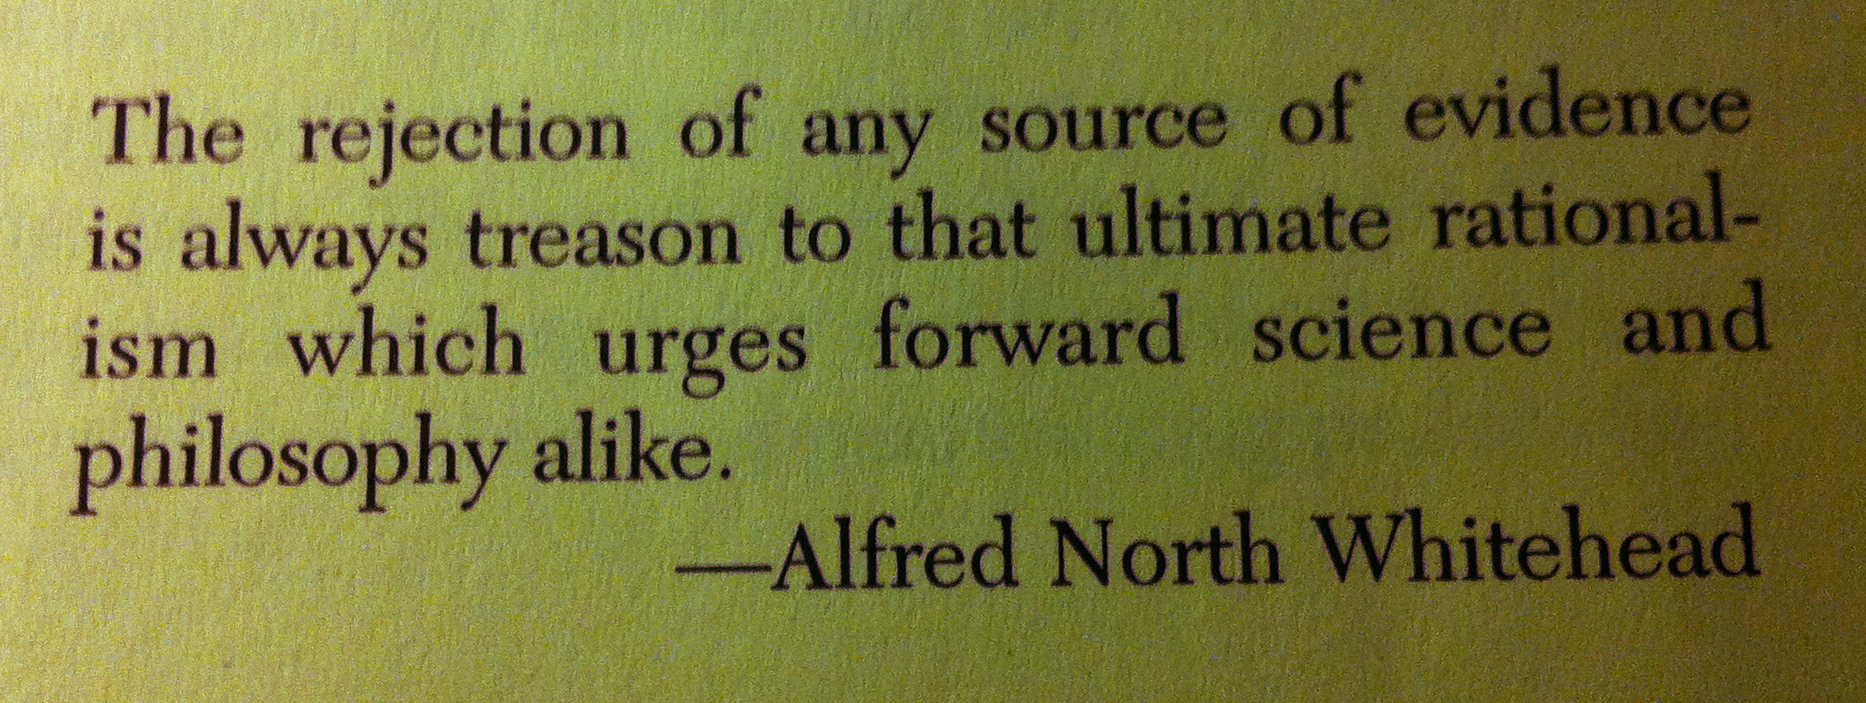 Alfred North Whitehead's quote #4